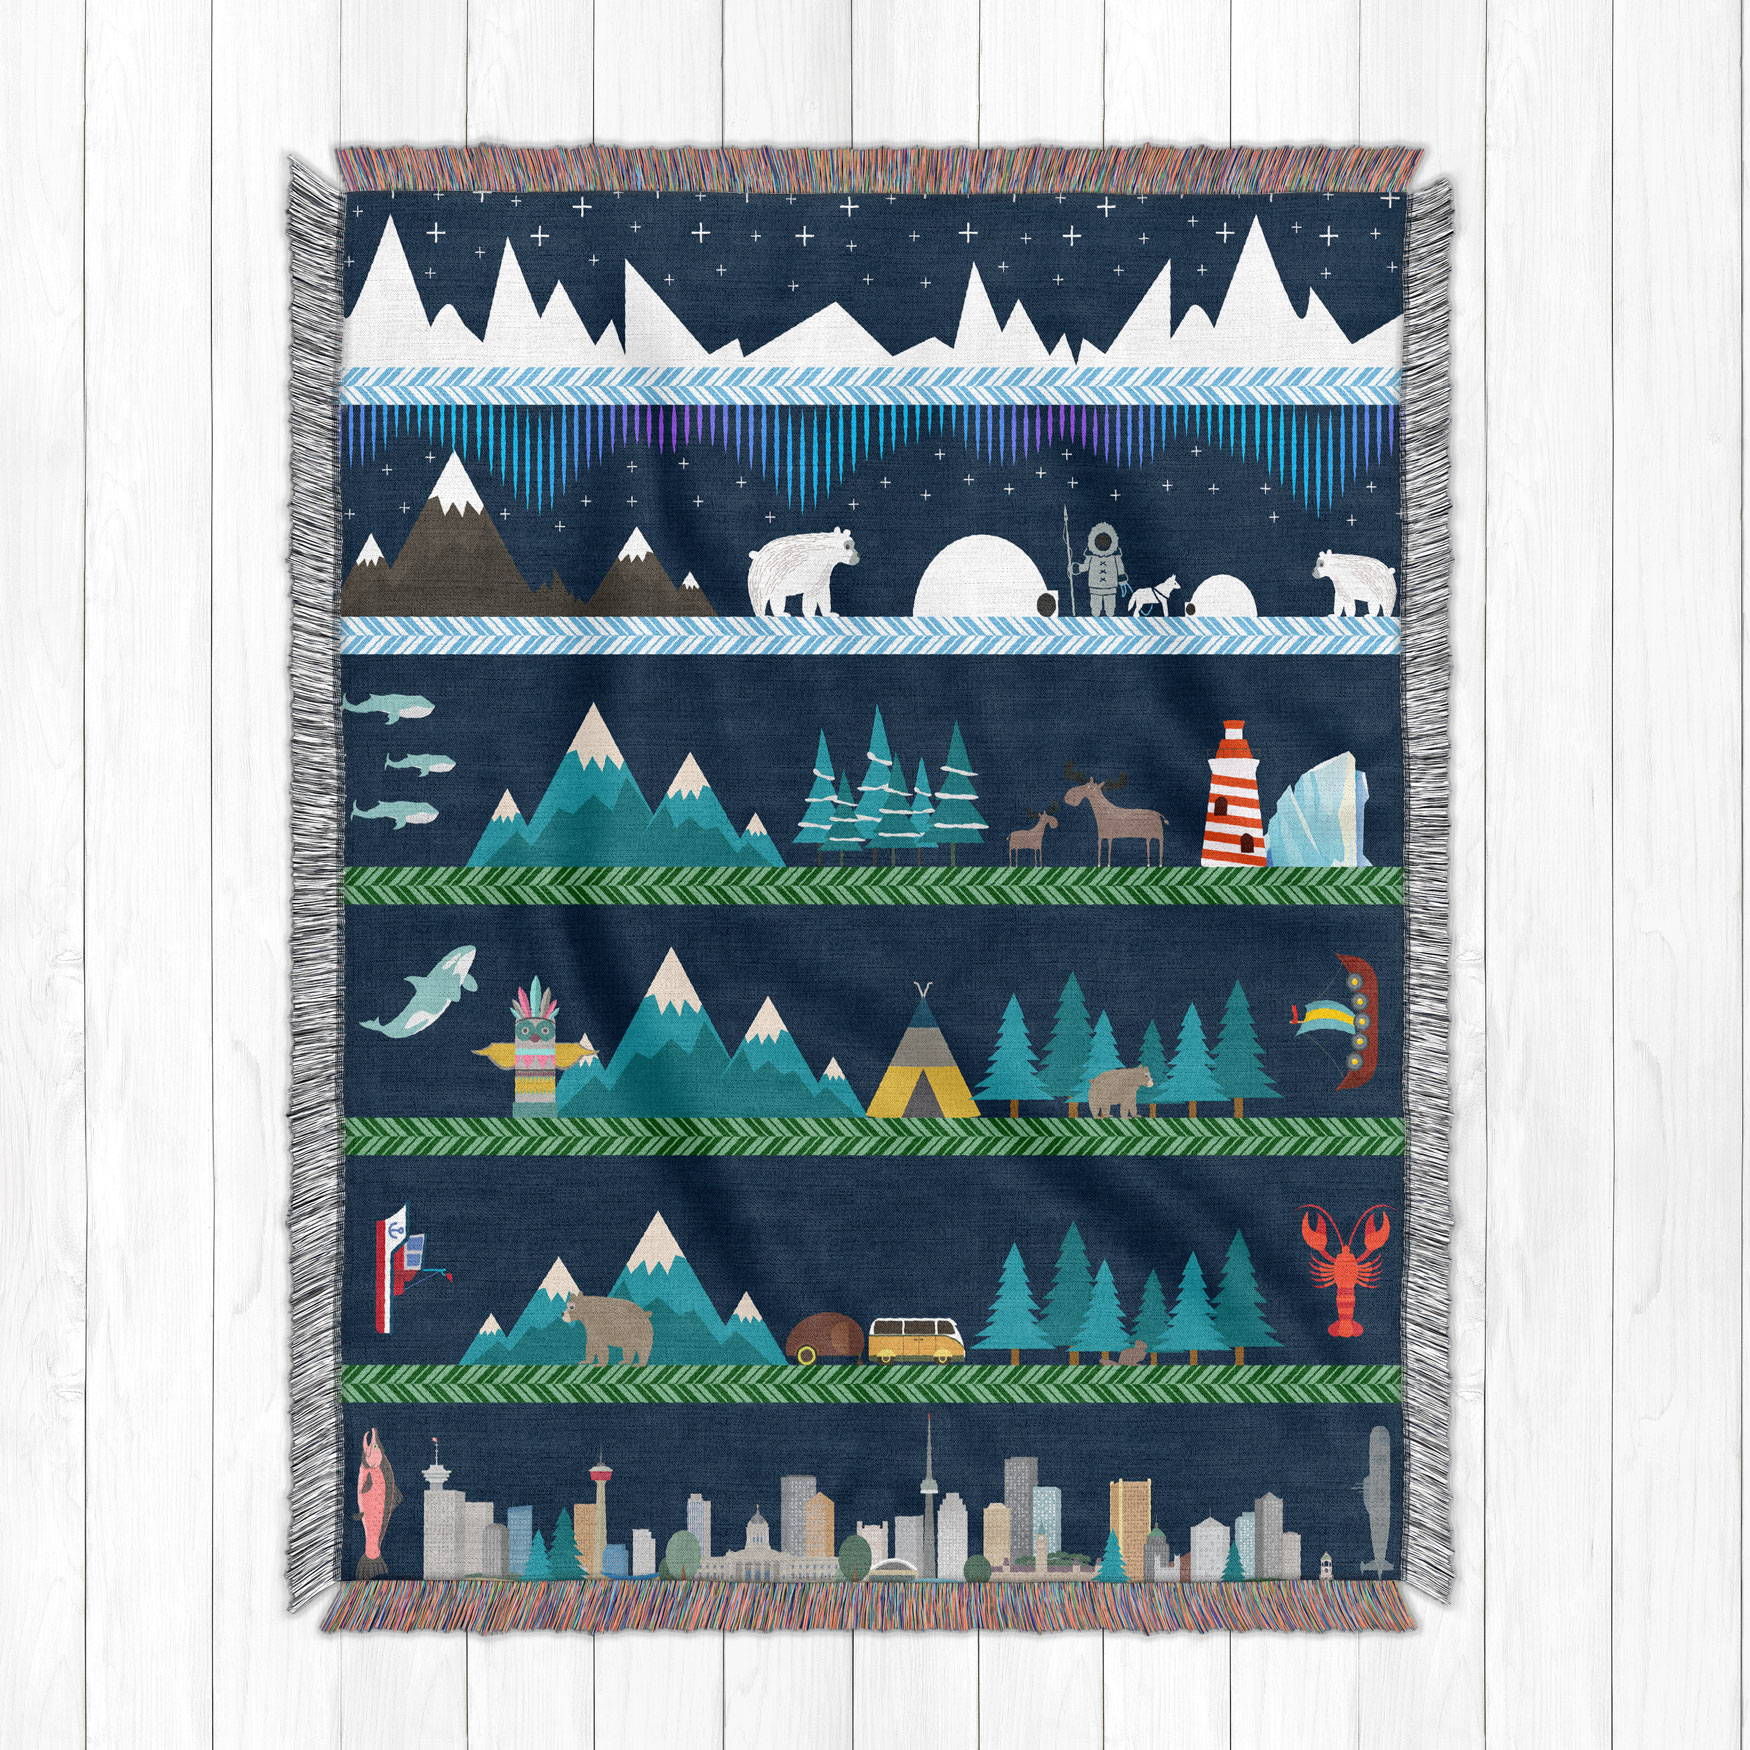 illustrated artwork of Canada from north to south as a cotton woven blanket